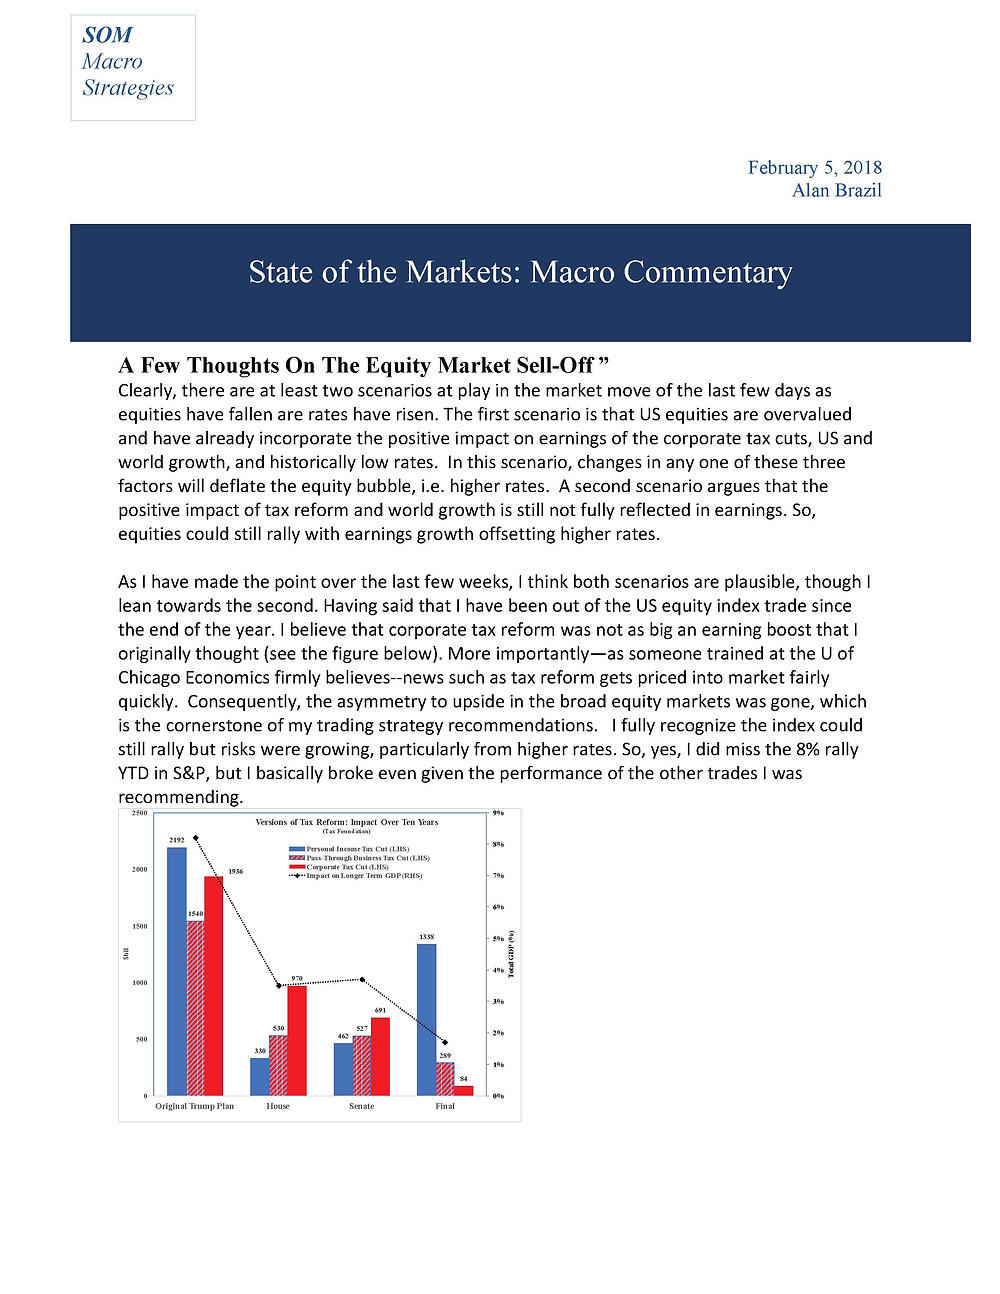 Here is piece I put out earlier in the week to my clients. The main idea of the piece is for investors to focus on the remaining and much more attractive asymmetries (even more attractive after the sell-off) remaining in the market and not on the question of the valuation of the broader US equity market. In my framework, these strategies are consistent with a view that rates are header higher--higher rates seems to be the culprit most investors are looking at for generating the sell-off. Yes, I would position for higher rates but at the same I would buy regional US banks and European equities.  Higher rates on the margin should actually provide a tailwind for regional bank ROTE growth. Tax reform will also provide an offset to higher rates for regional bank through higher after-tax earnings, since they have been paying pretty close to the 35% corporate rate. Add to this upside, the potential boost to valuations of regionals from financial reform. This reform could drive price-to-tangible book back up to historically levels (almost double from current levels) by allowing banks to grow earnings through higher margin lending and by allowing them to releverage back up to historical levels. Part of this view on the benign impact of higher rates is that normalization of rates come gradually. Most importantly that inflation does not spin out of control, which could trigger a much more aggressive Fed. So in contrast to a number of investors and commentators that are still fighting the last war, I find it hard to believe that the inflation going back to levels of the 70-90s is a real threat. Demographics have reduced that threat substantially and created another more likely threat of deflation, just look at Europe and Japan.  European equities look compelling even with the potential valuation issues about US equities because they have largely missed the US equity rally. This should give them somewhat of a buffer to the downside, and give them cheap asymmetry to the upside fr